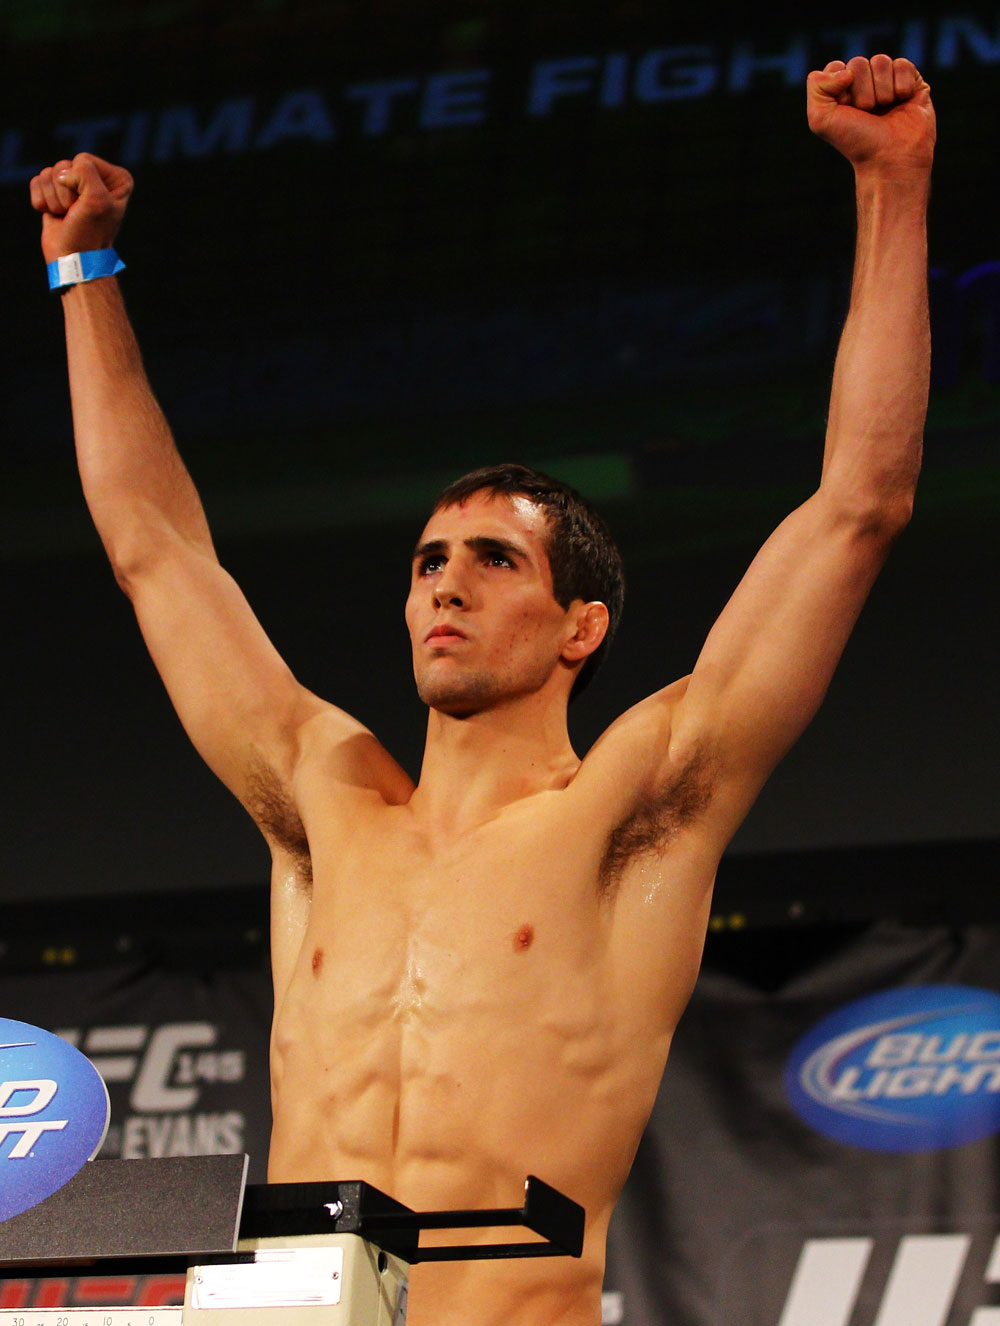 ATLANTA, GA - APRIL 20:  Welterweight fighter Rory MacDonald weighs in for his bout against Che Mills during the UFC 145 official weigh in at Fox Theatre on April 20, 2012 in Atlanta, Georgia.  (Photo by Al Bello/Zuffa LLC/Zuffa LLC via Getty Images)